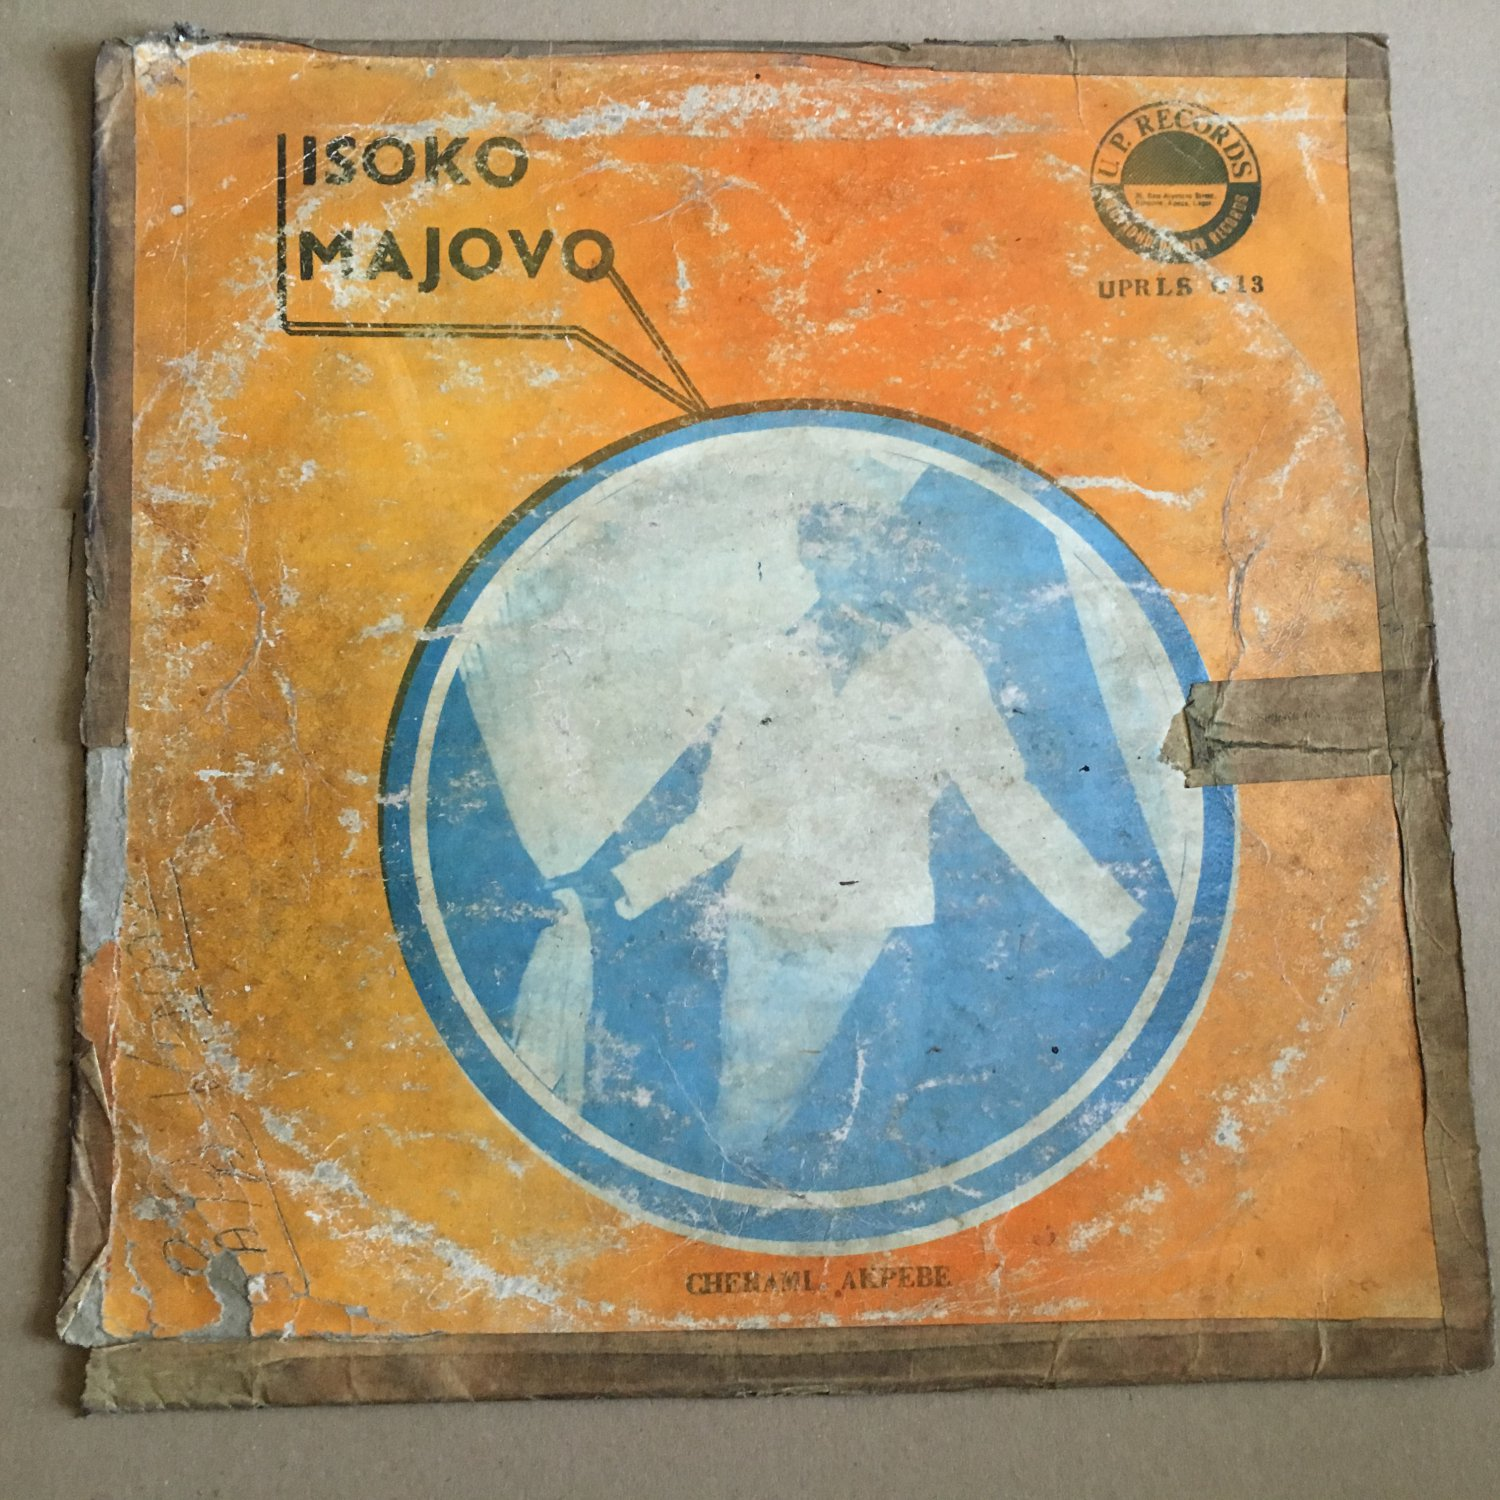 EVERY DANCE BAND OZORO LP isoko majovo NIGERIA HIGHLIFE mp3 LISTEN